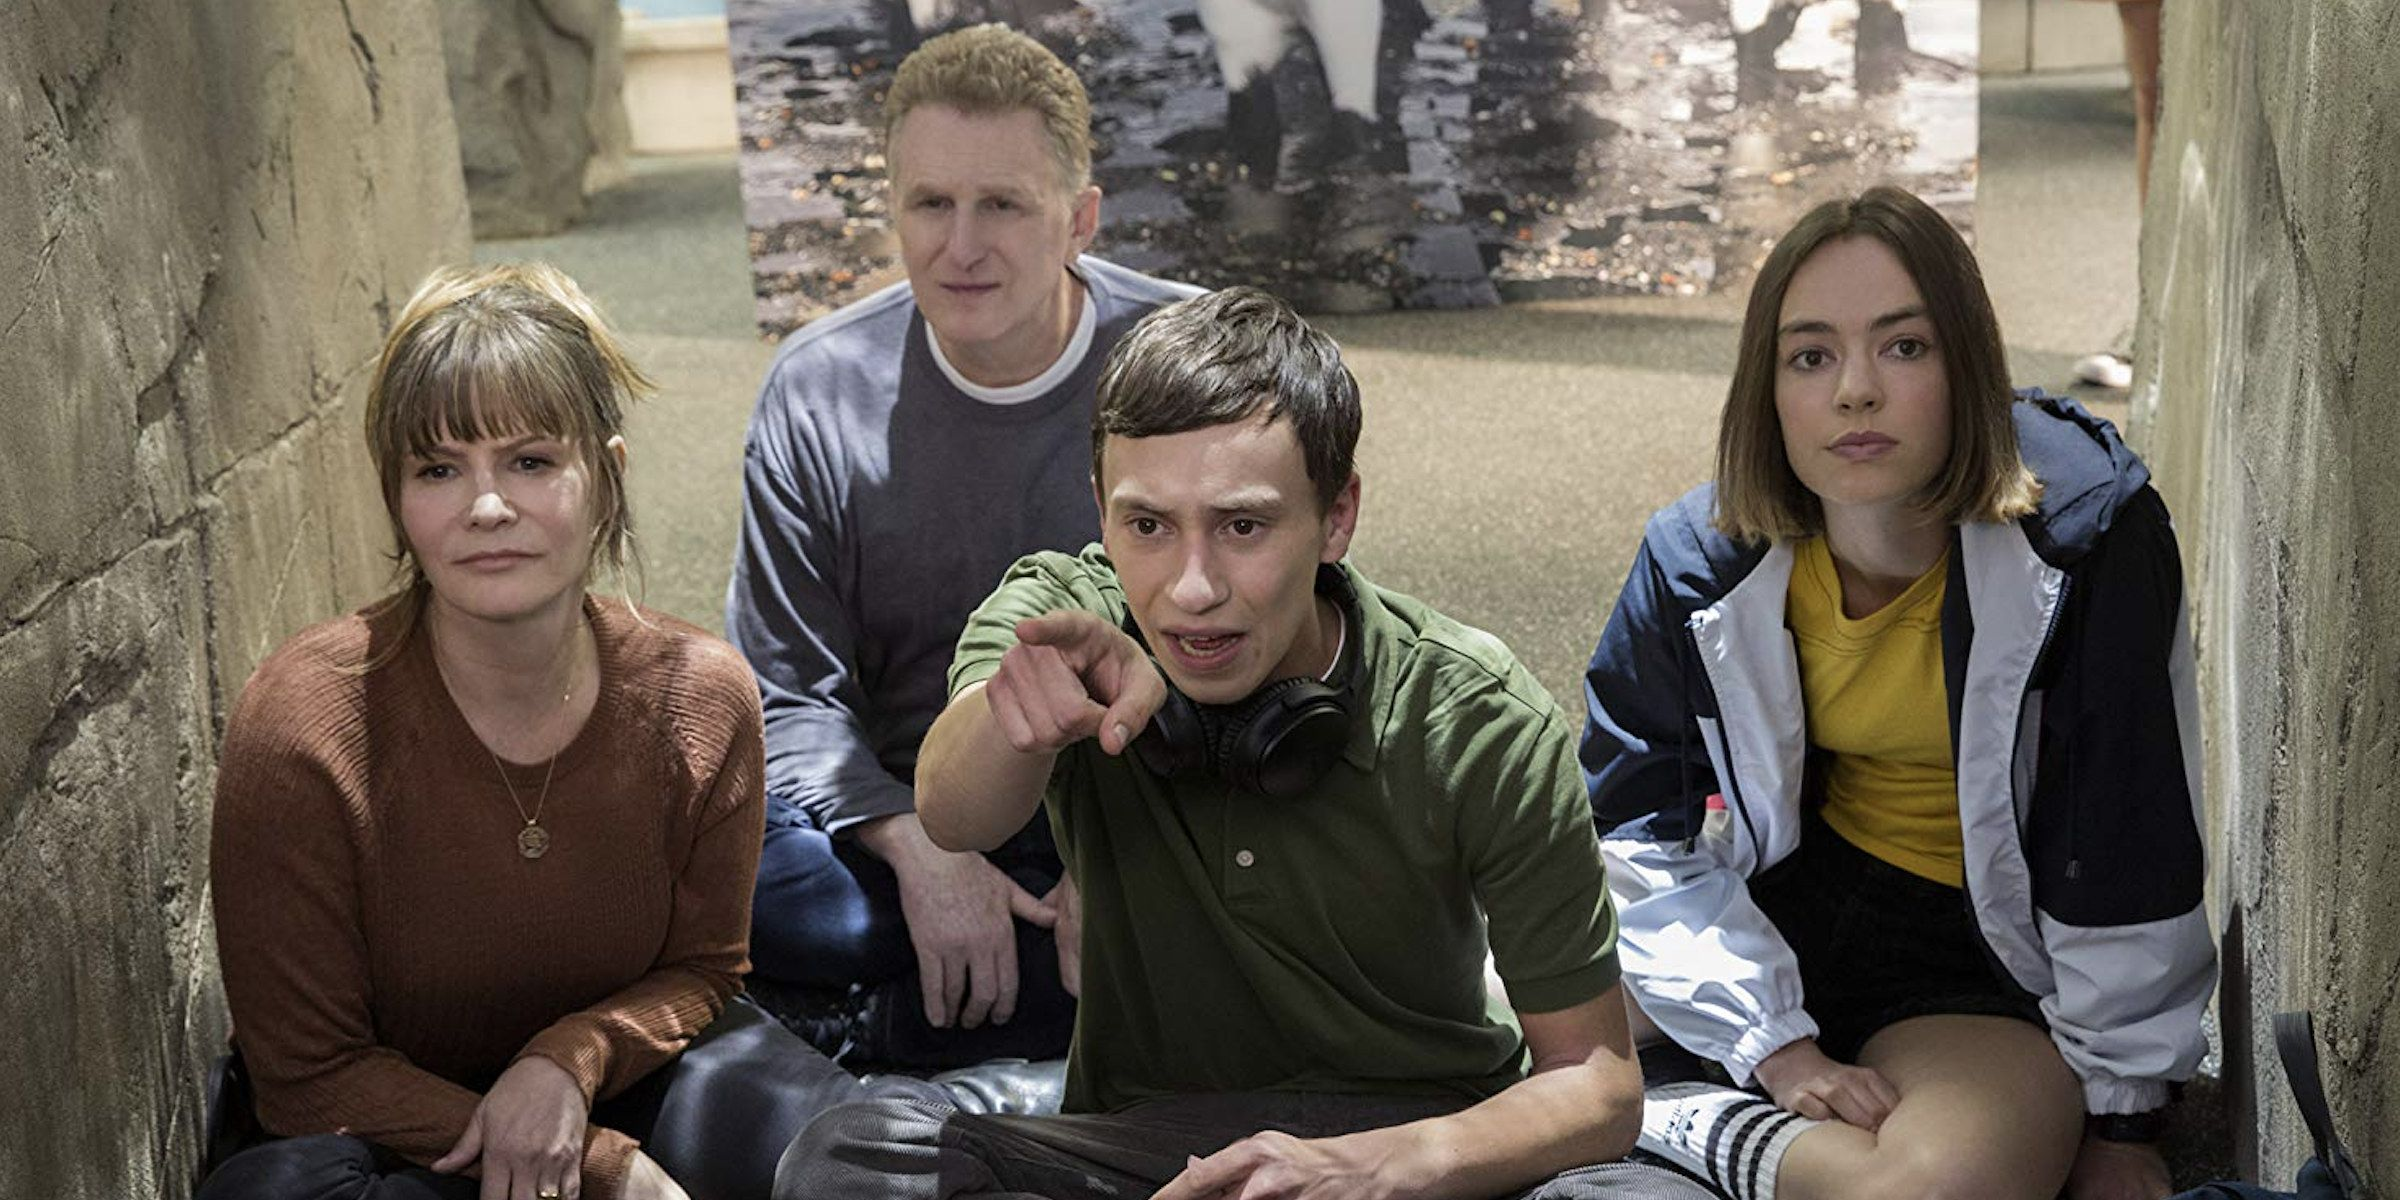 Atypical Season 4 Trailer Highlights The Netflix Show's Final Episodes